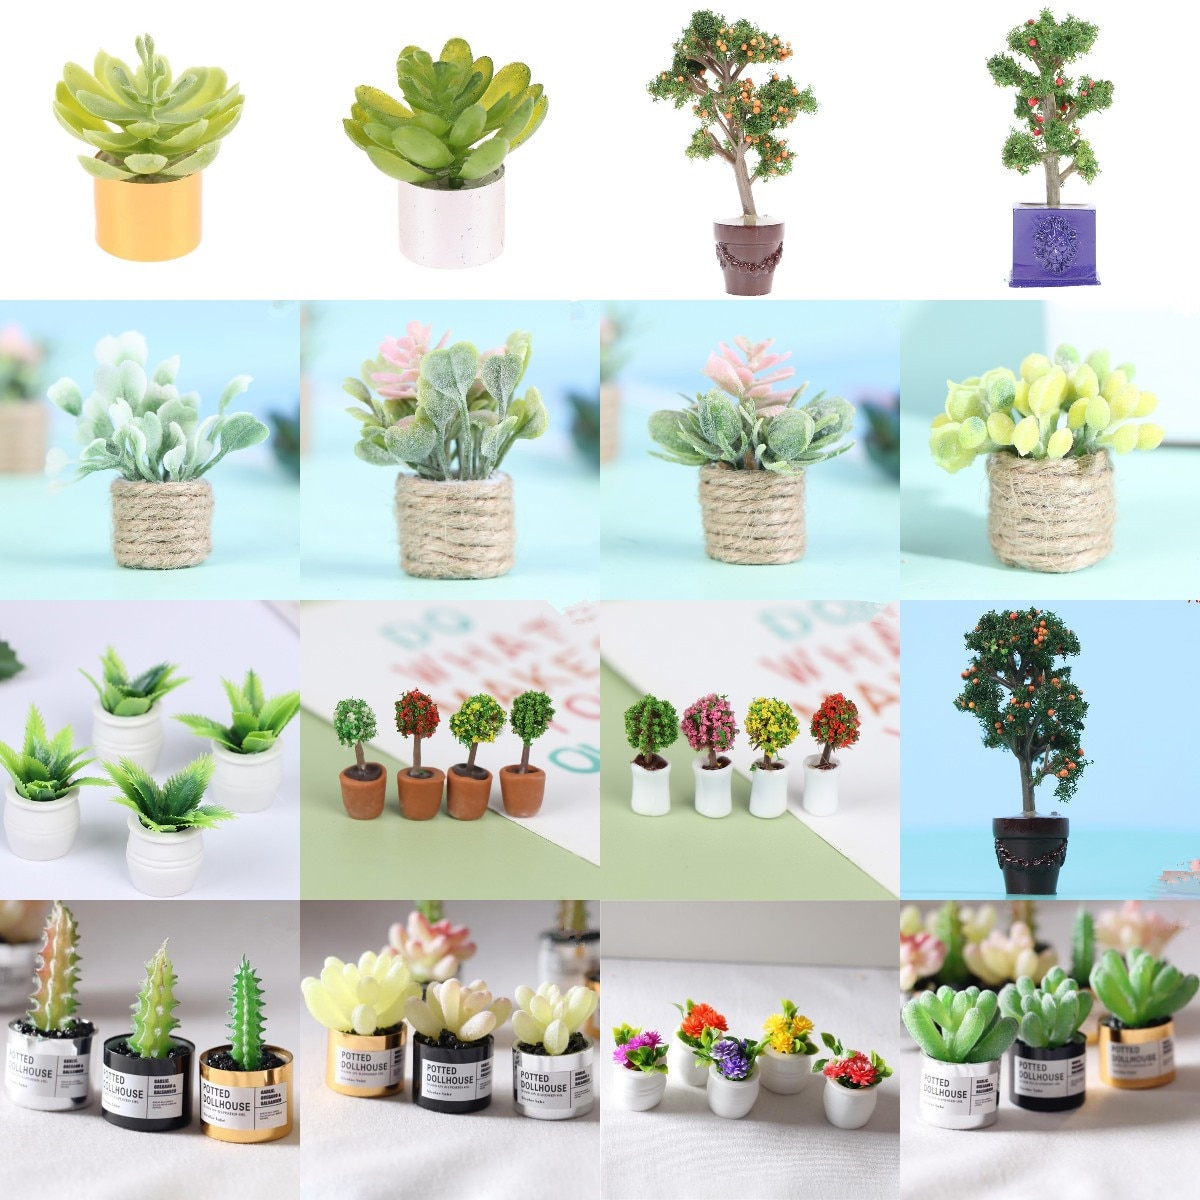 1 12 dollhouse miniature potted plant ceramic pot brasiletto Mini Flower Potted For Green Plant In Pot Simulation Plants Doll House Furniture Home Decoration 1:12 Dollhouse Miniature